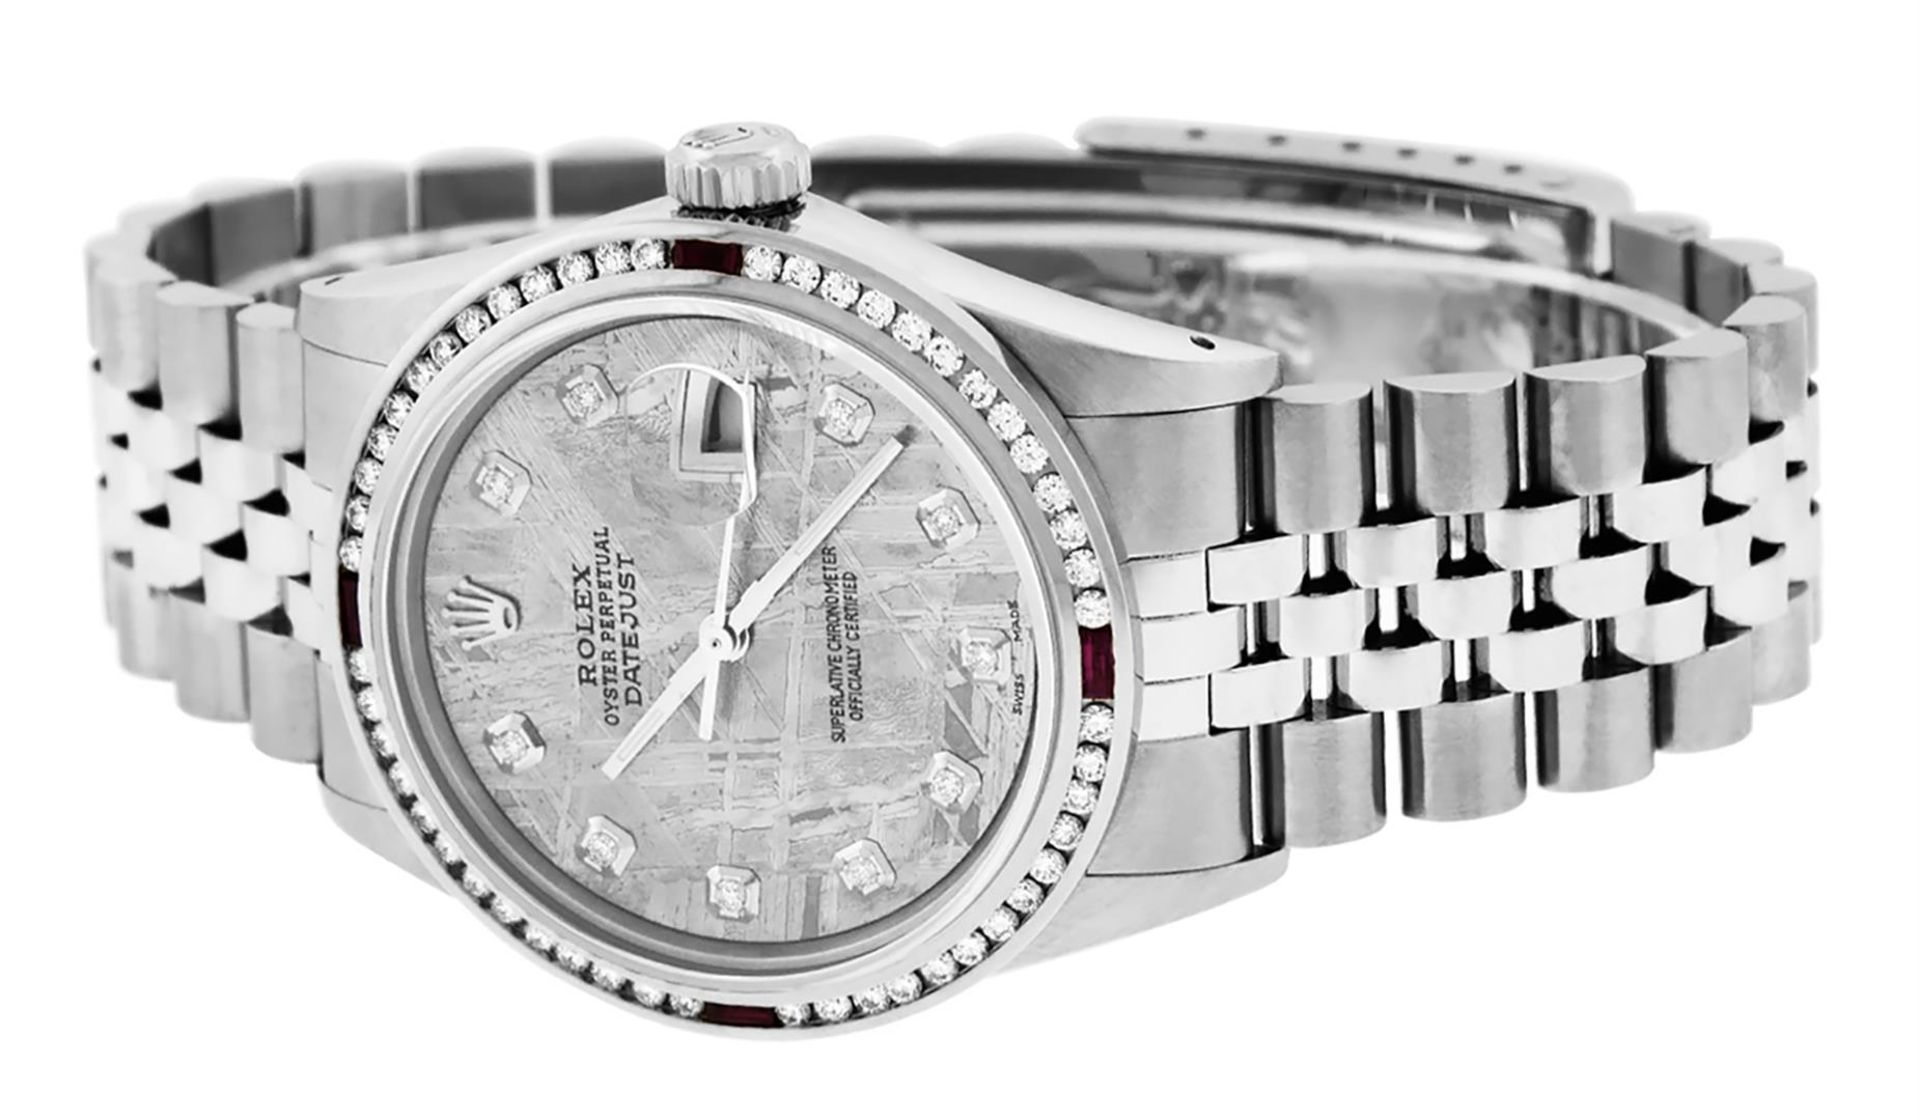 Rolex Mens SS Meteorite Diamond & Ruby Channel Set Diamond Datejust 36MM - Image 5 of 8